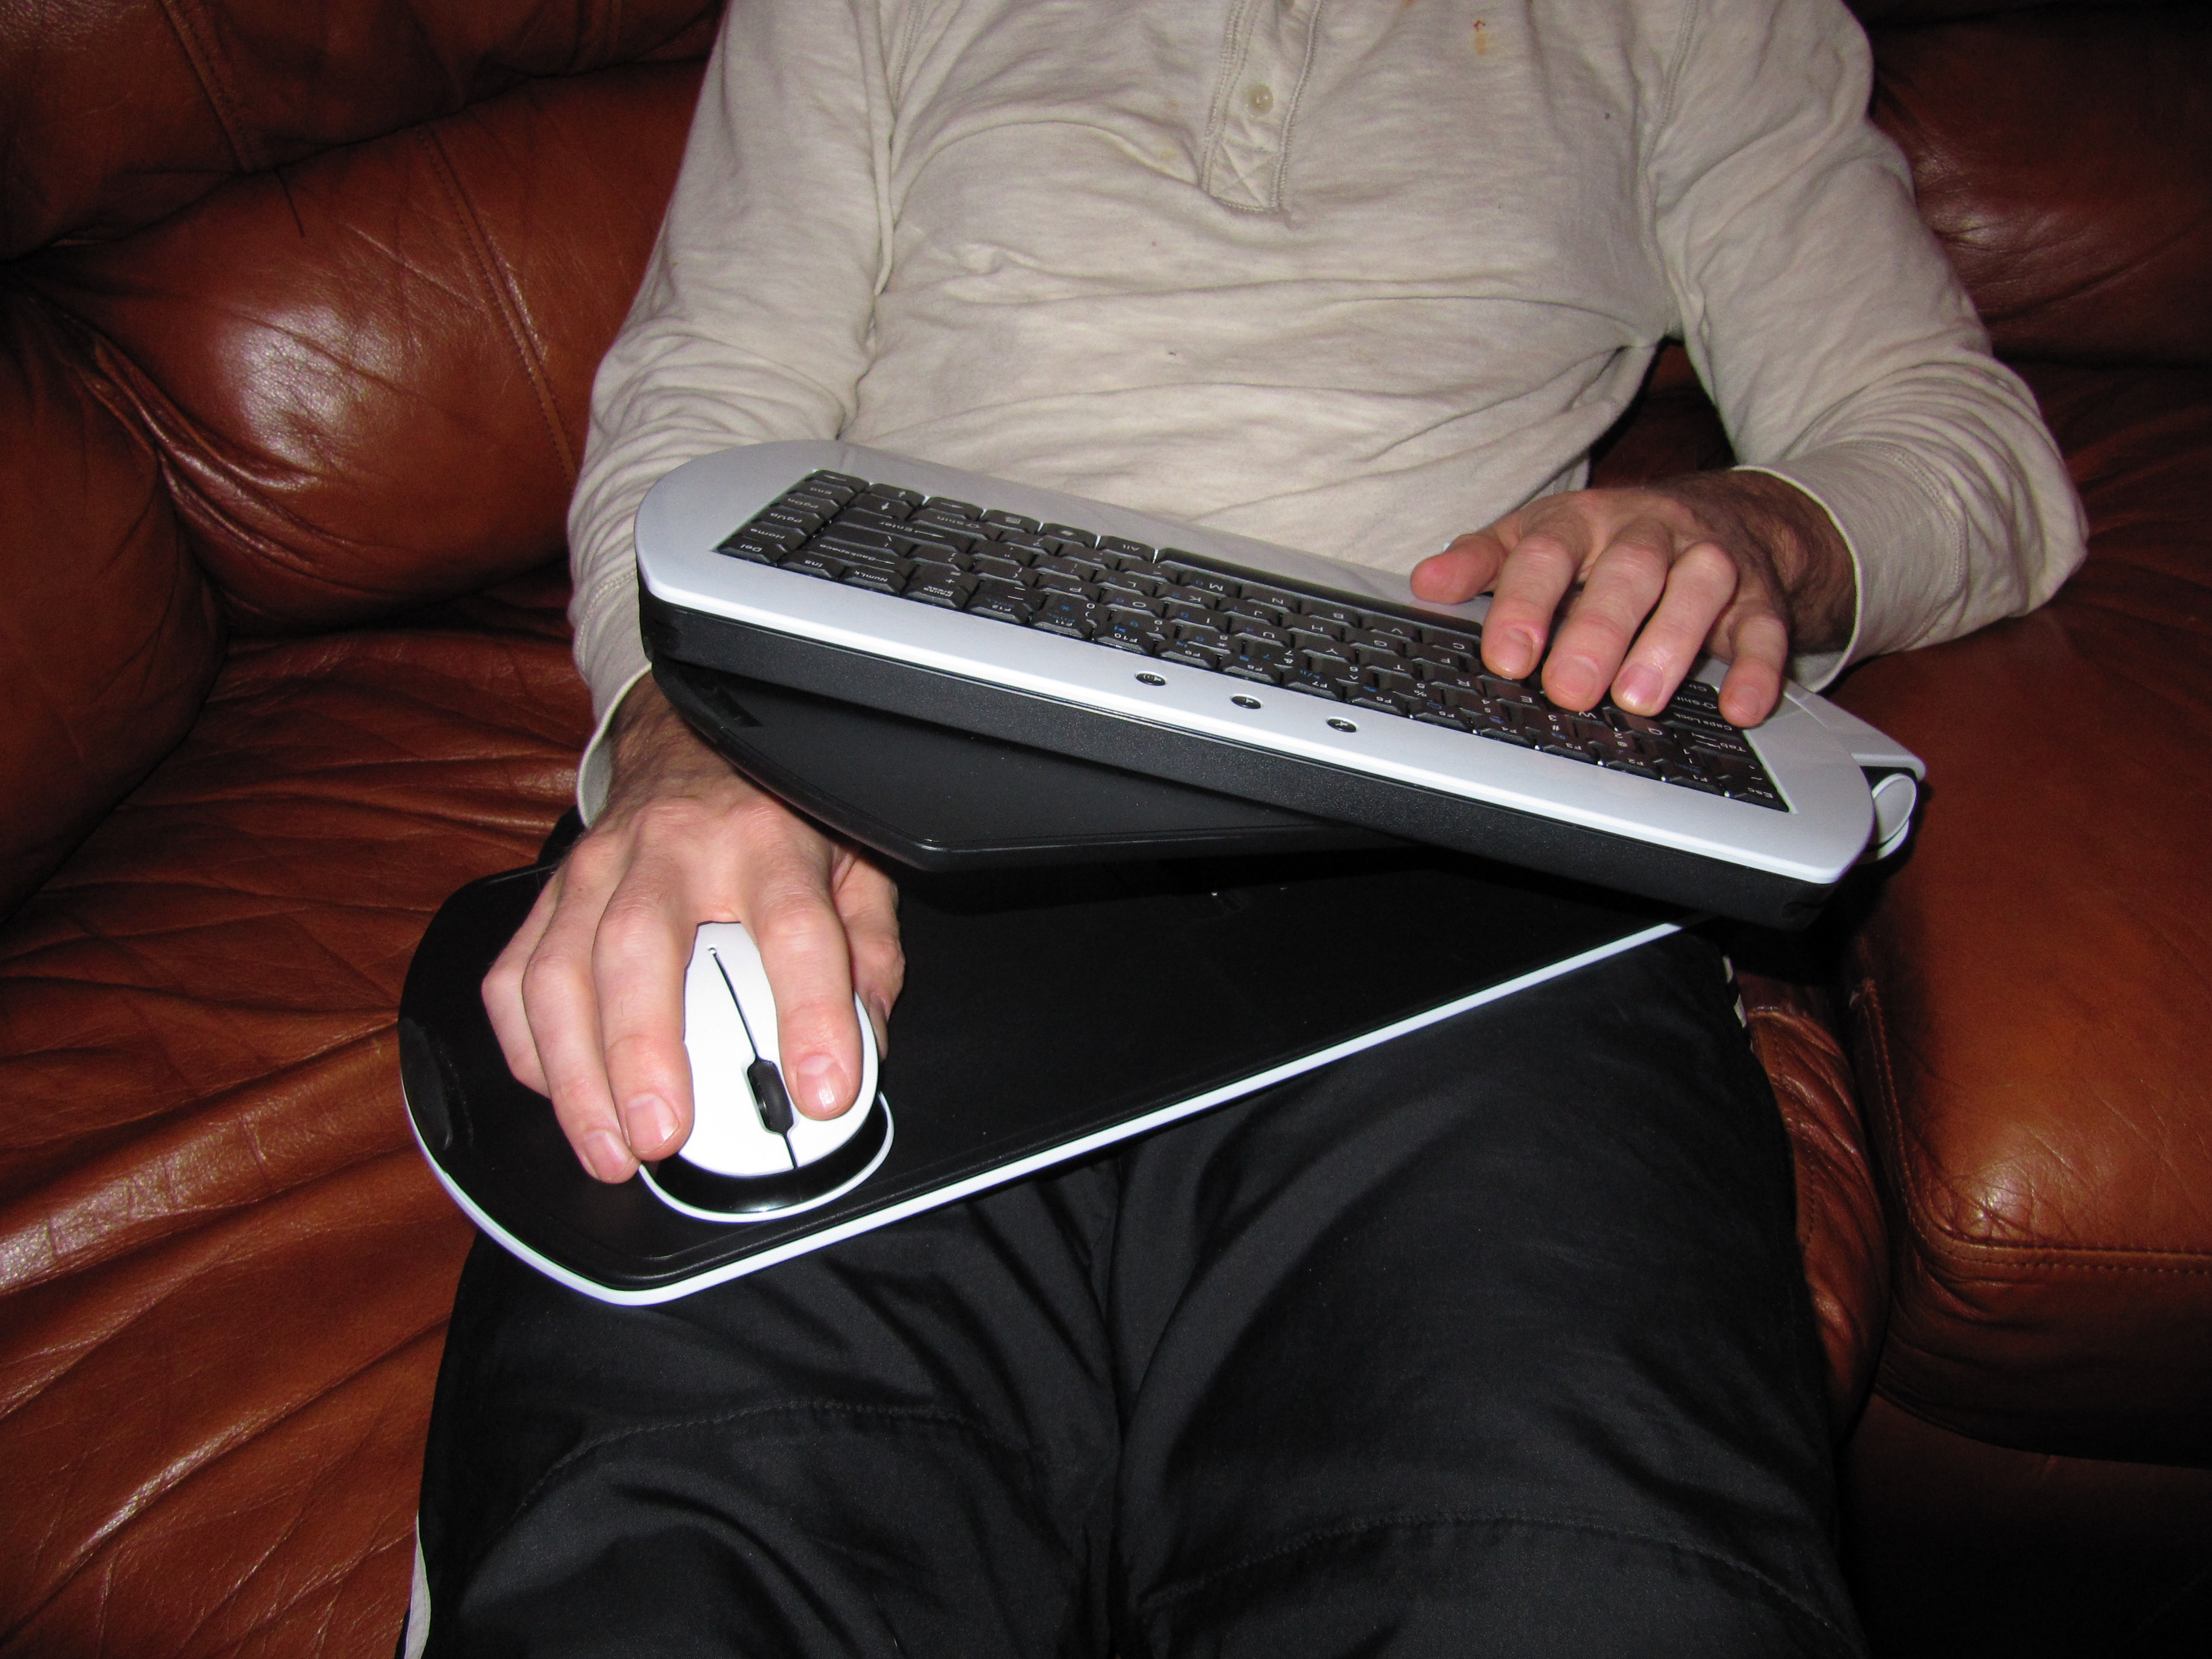 Couch Keyboard And Mouse